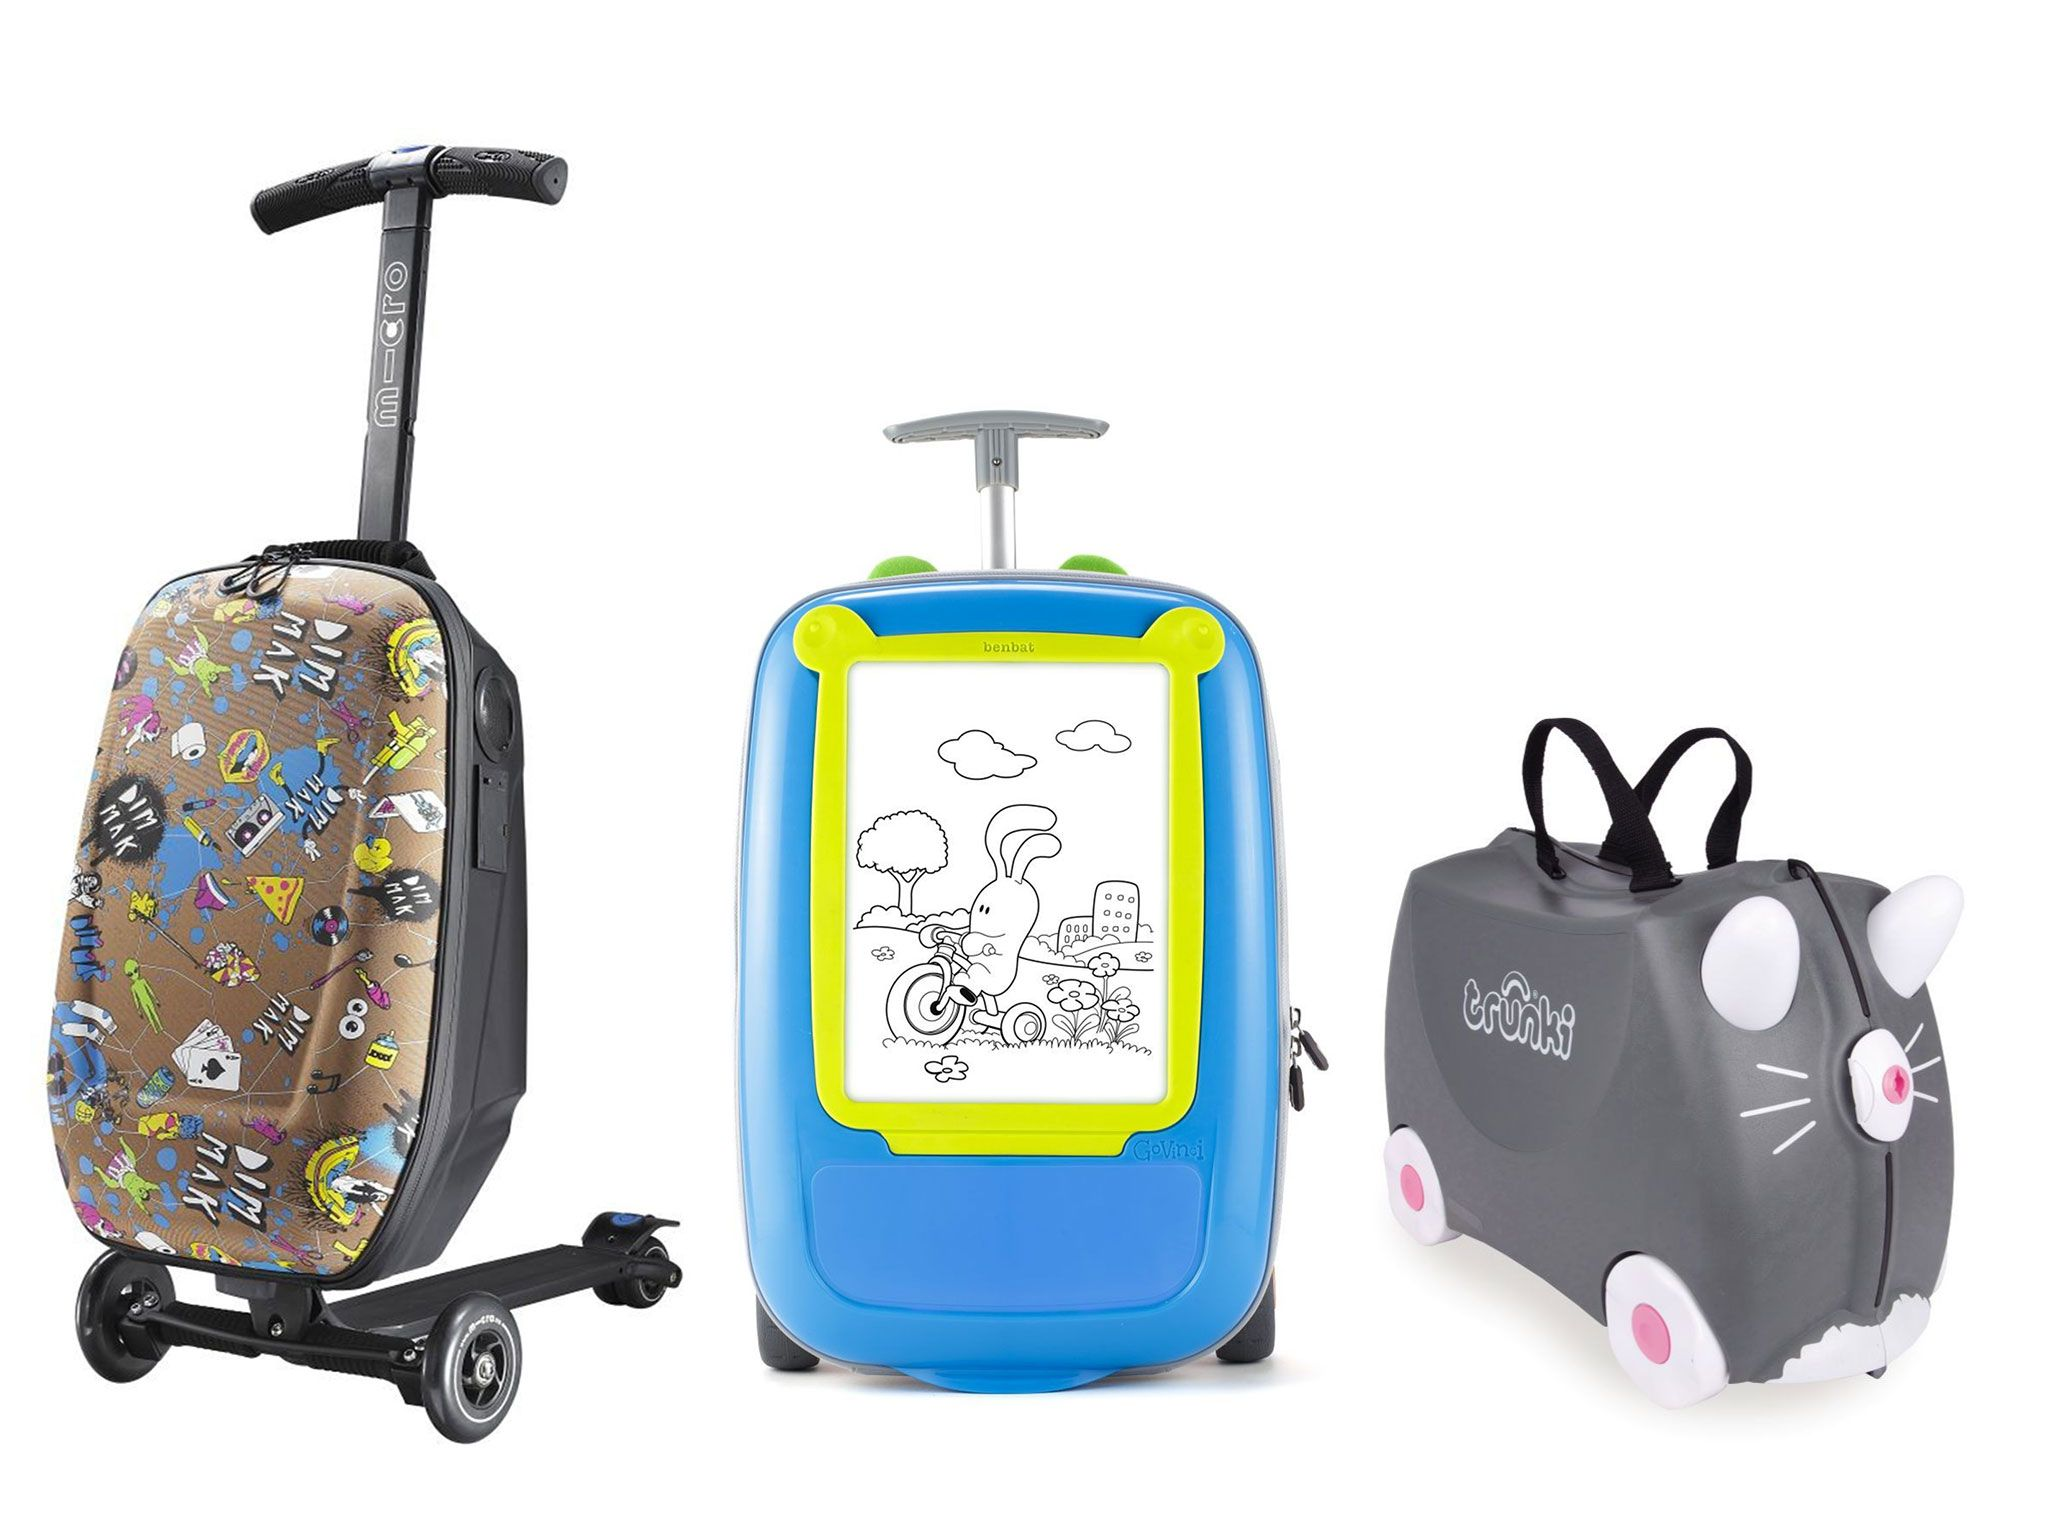 10 best children's luggage | Childrens luggage and Disney trips